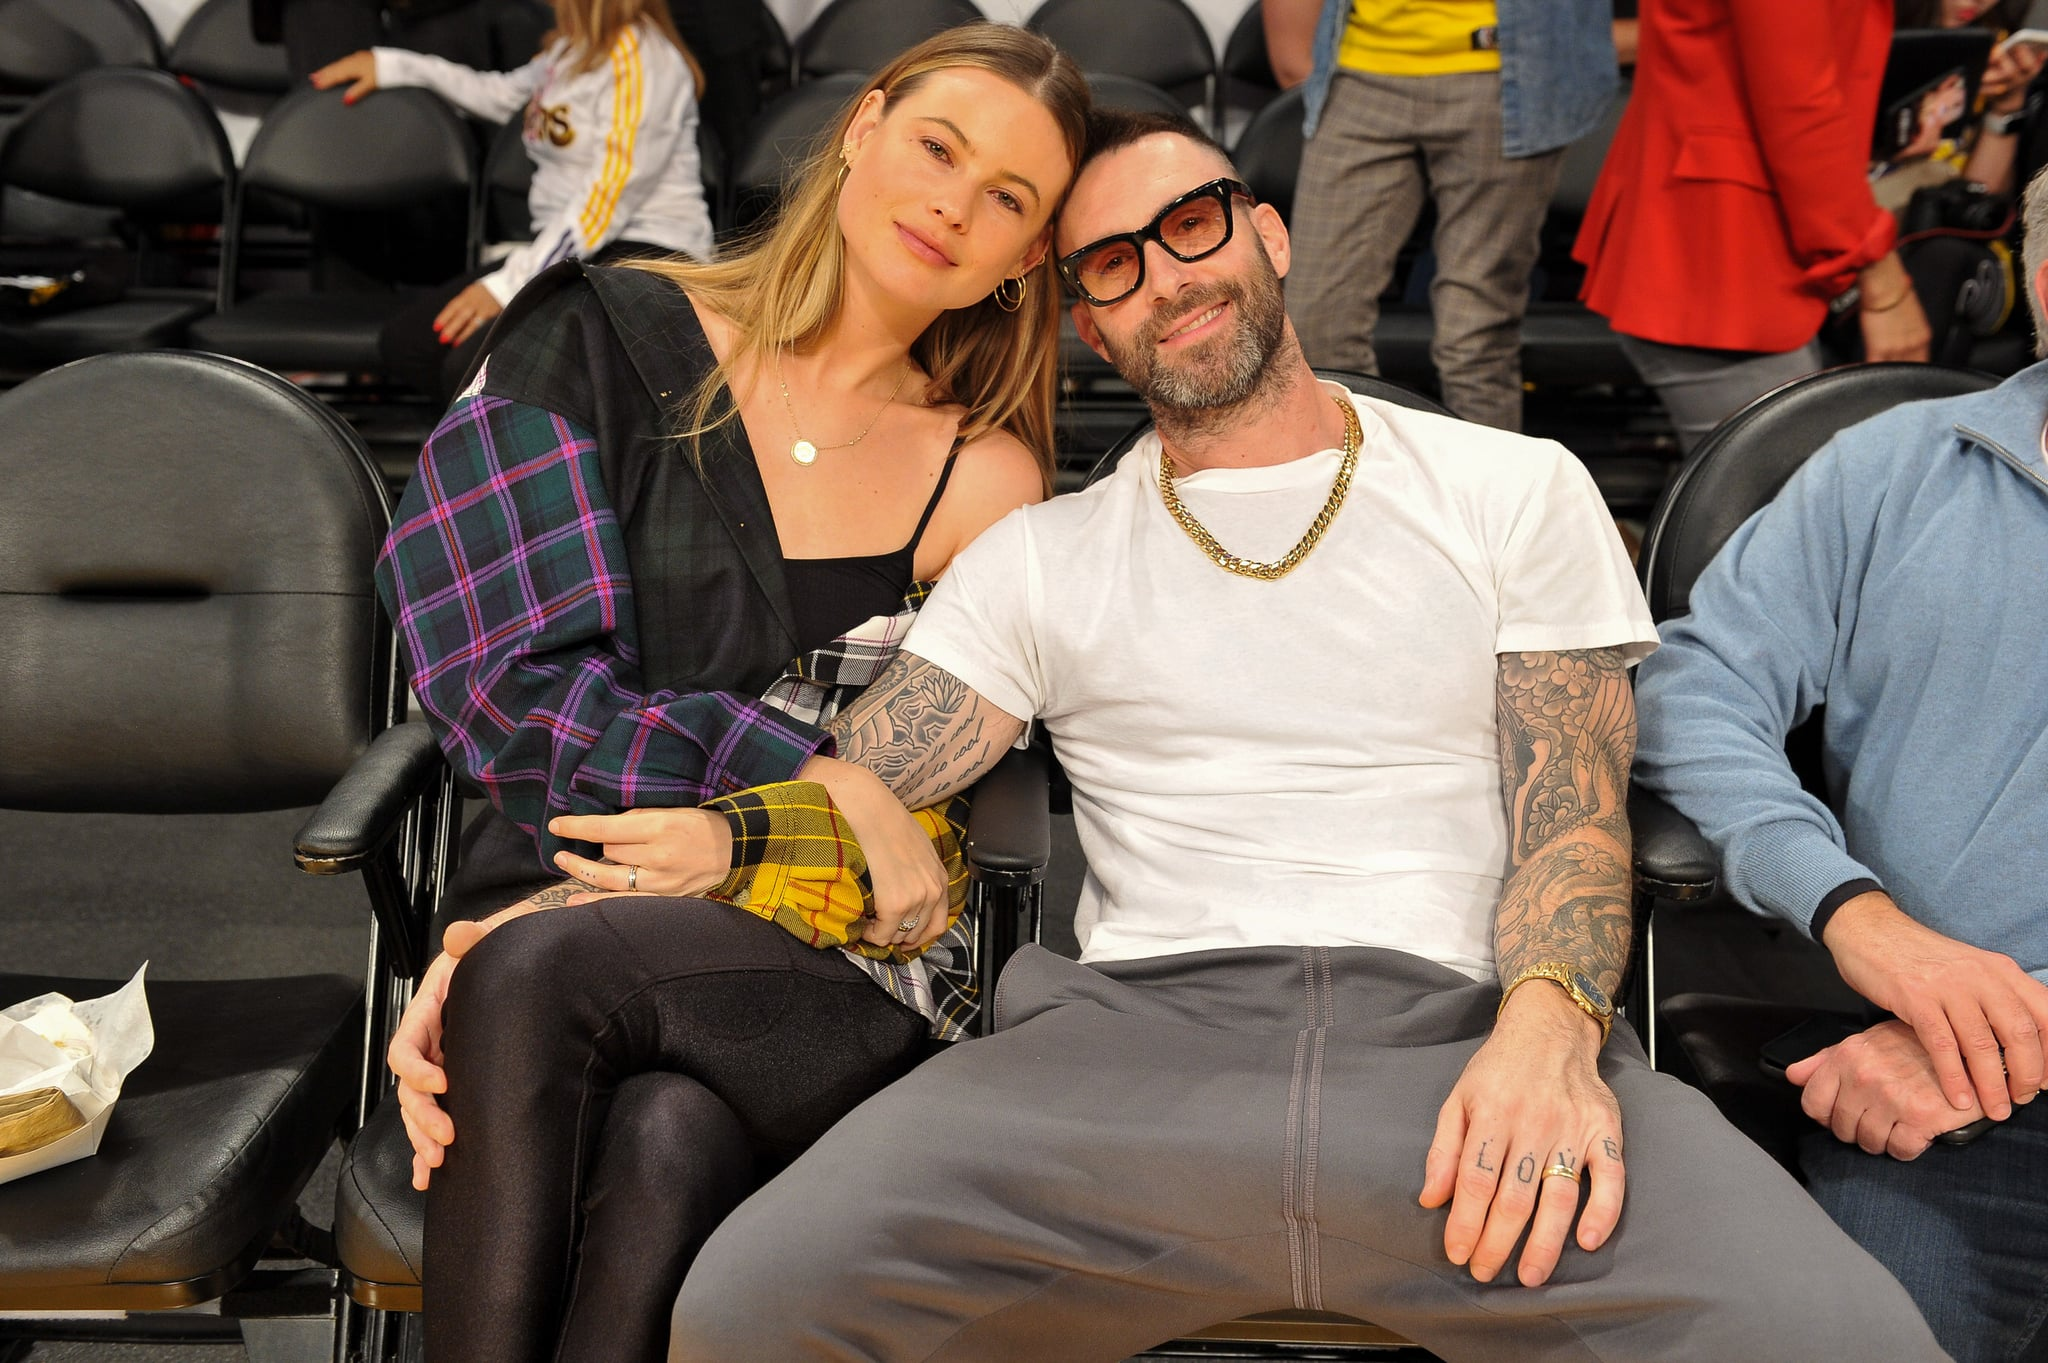 LOS ANGELES, CA - OCTOBER 20:  Adam Levine and Behati Prinsloo attend a basketball game between the Los Angeles Lakers and the Houston Rockets at Staples Center on October 20, 2018 in Los Angeles, California.  (Photo by Allen Berezovsky/Getty Images)